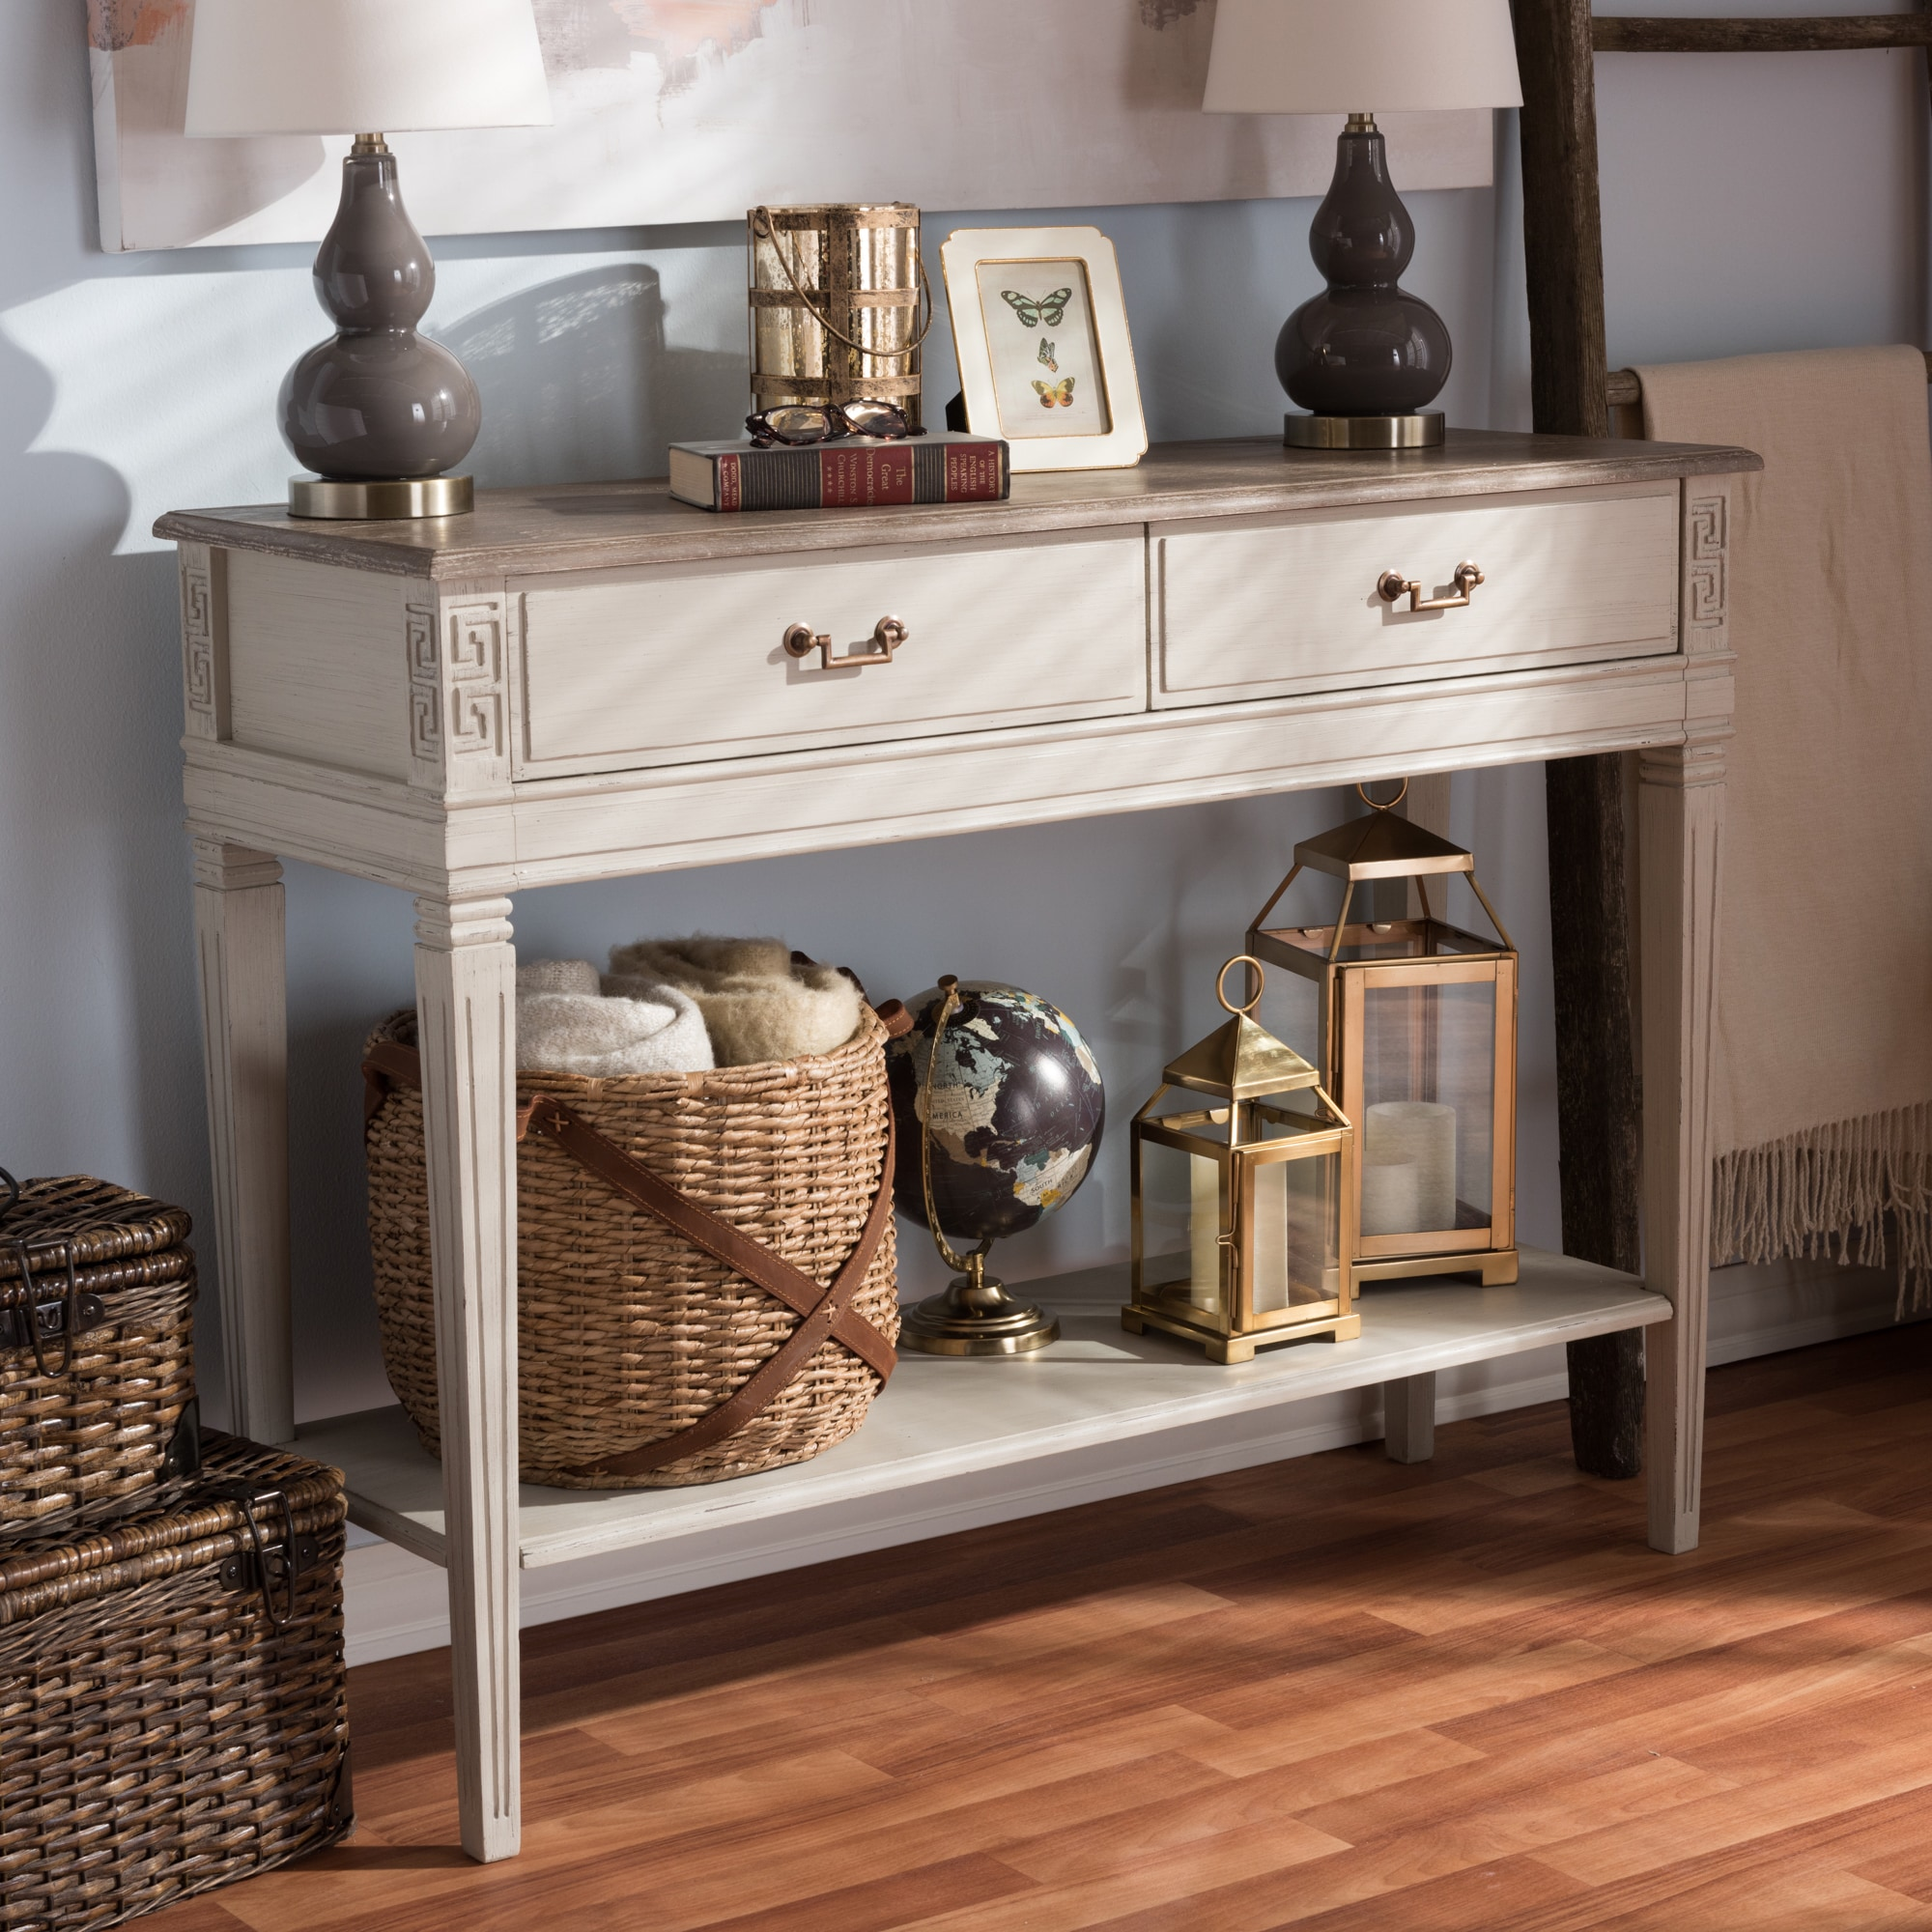 Baxton Studio Hermione French Provincial Style Weathered Oak and